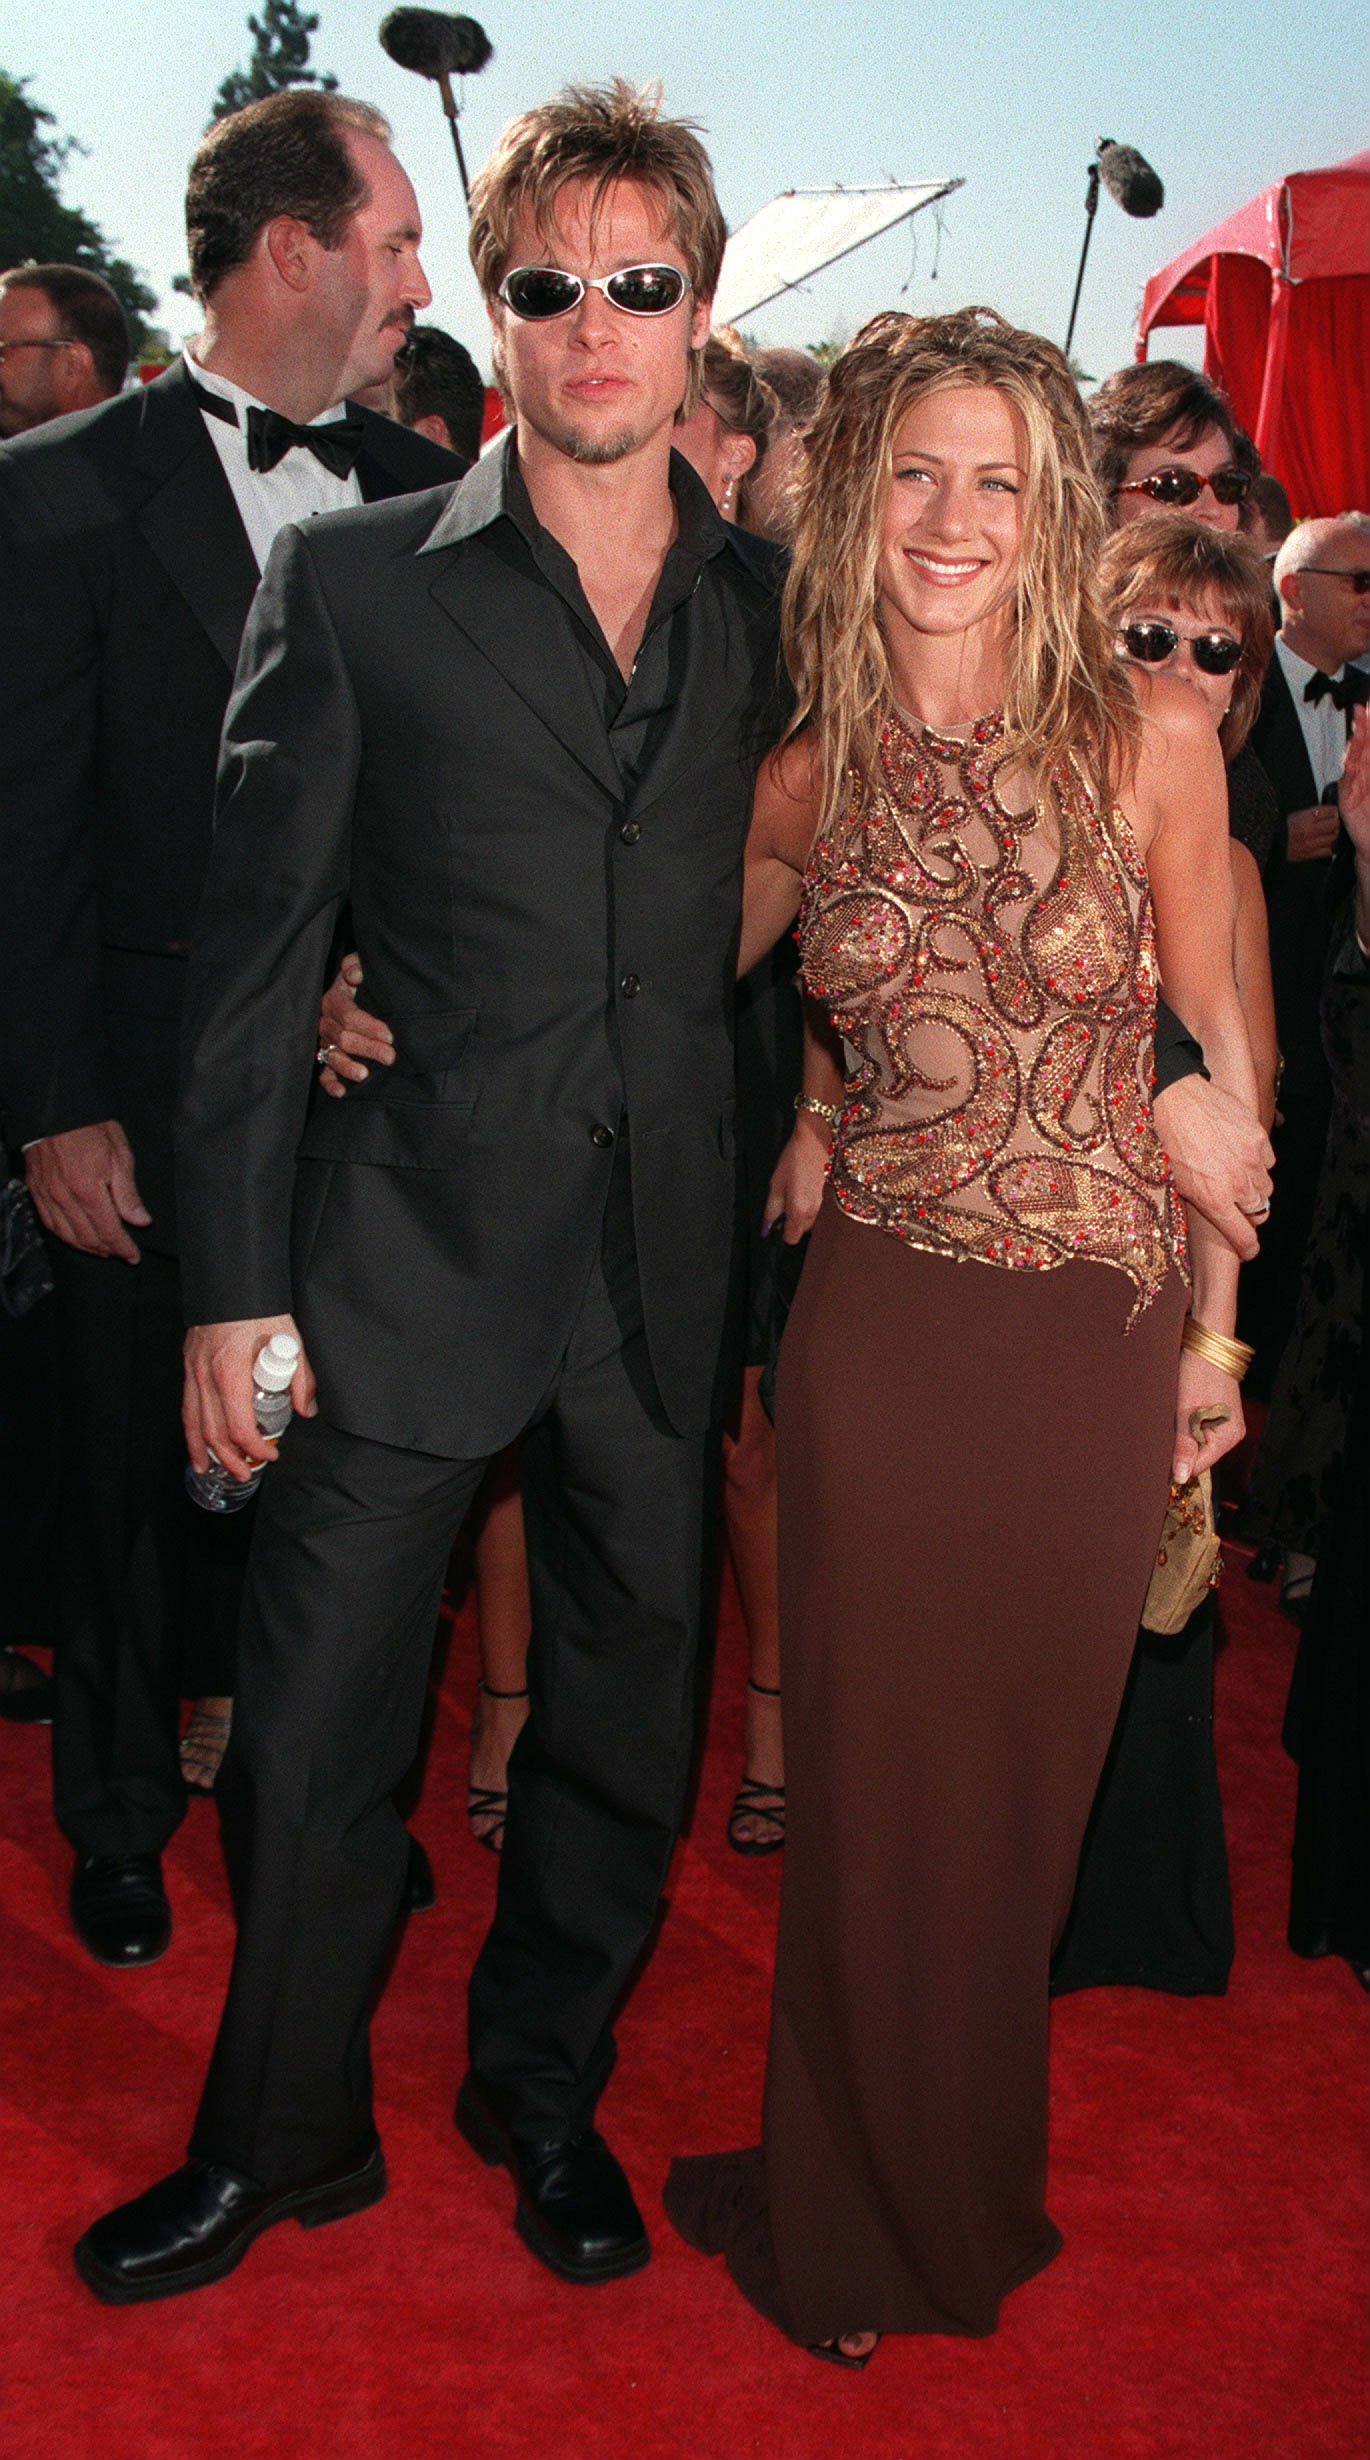 Brad Pitt and Jennifer Aniston attend the Emmy Awards at the Shrine Auditorium in Los Angeles, Calif., on on Sept. 12, 1999.